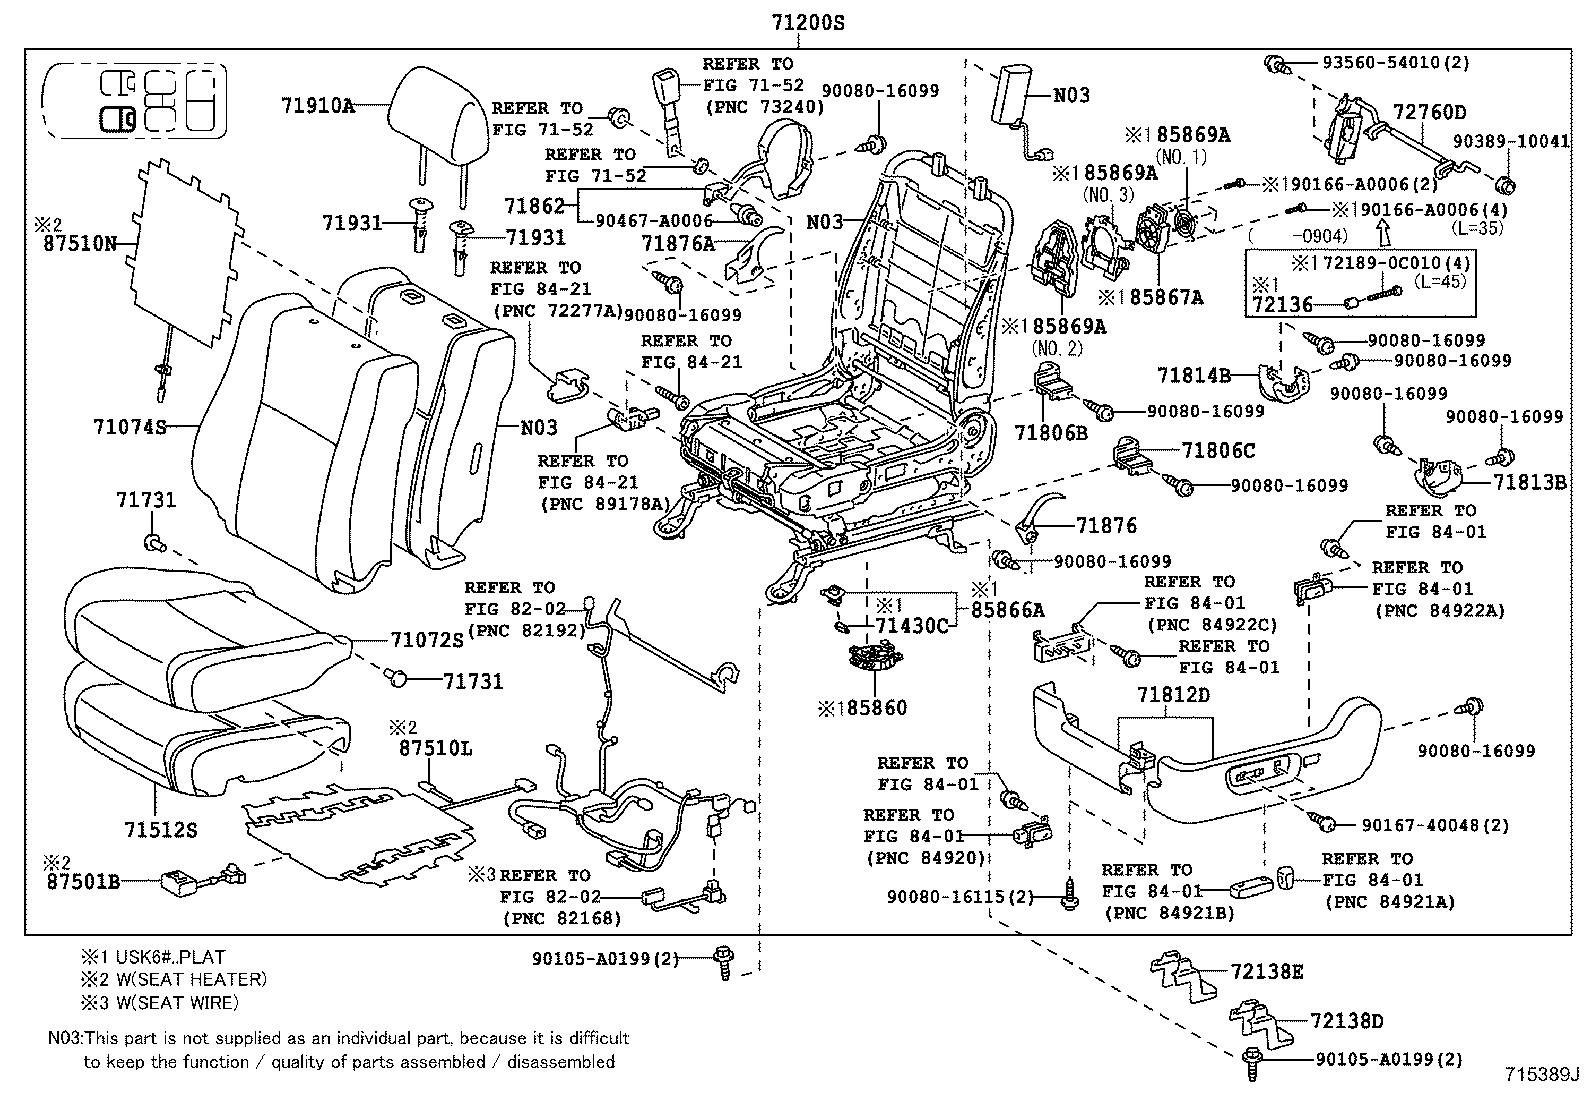 2008 Toyota Sequoia Interior Parts Diagram. Toyota. Auto